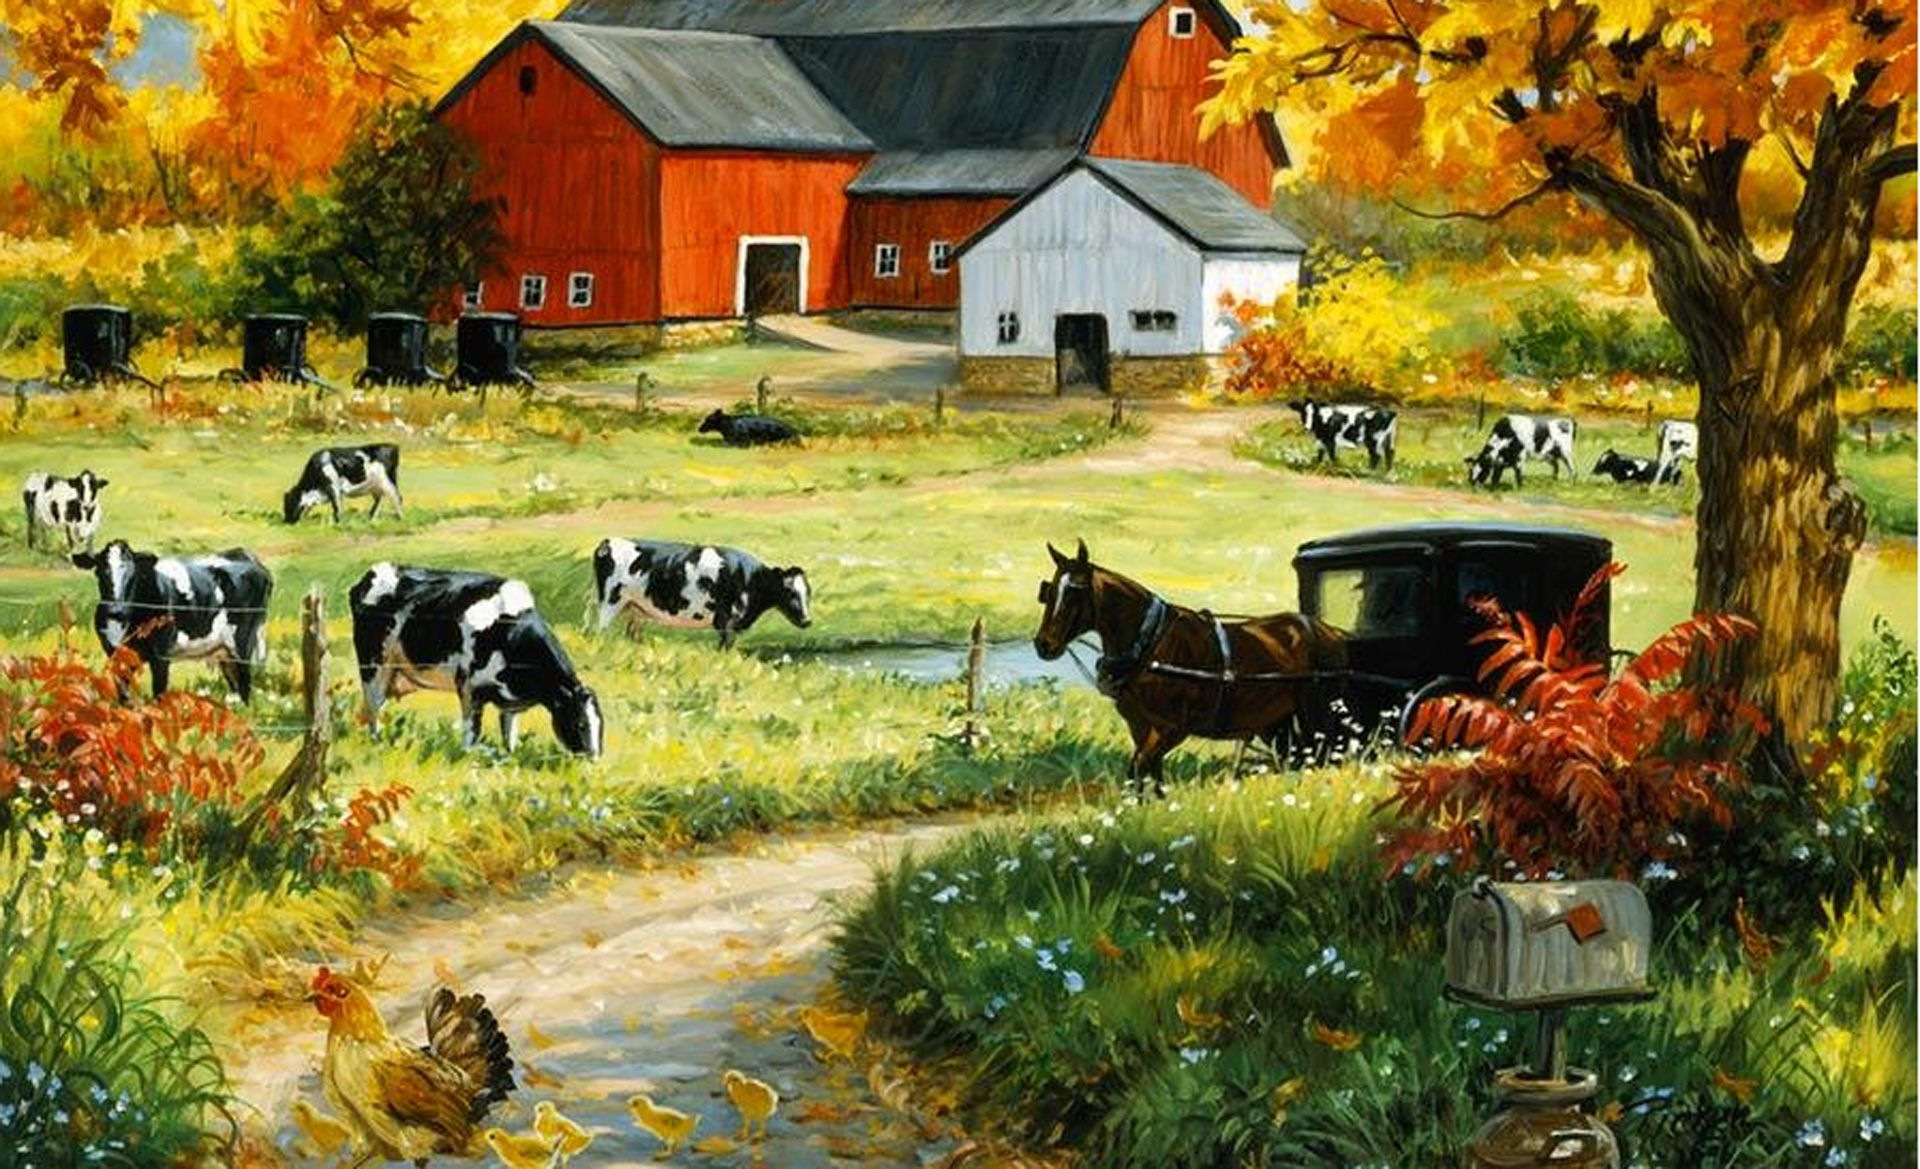 murals for walls Red Barn wall mural Wallpaper Murals